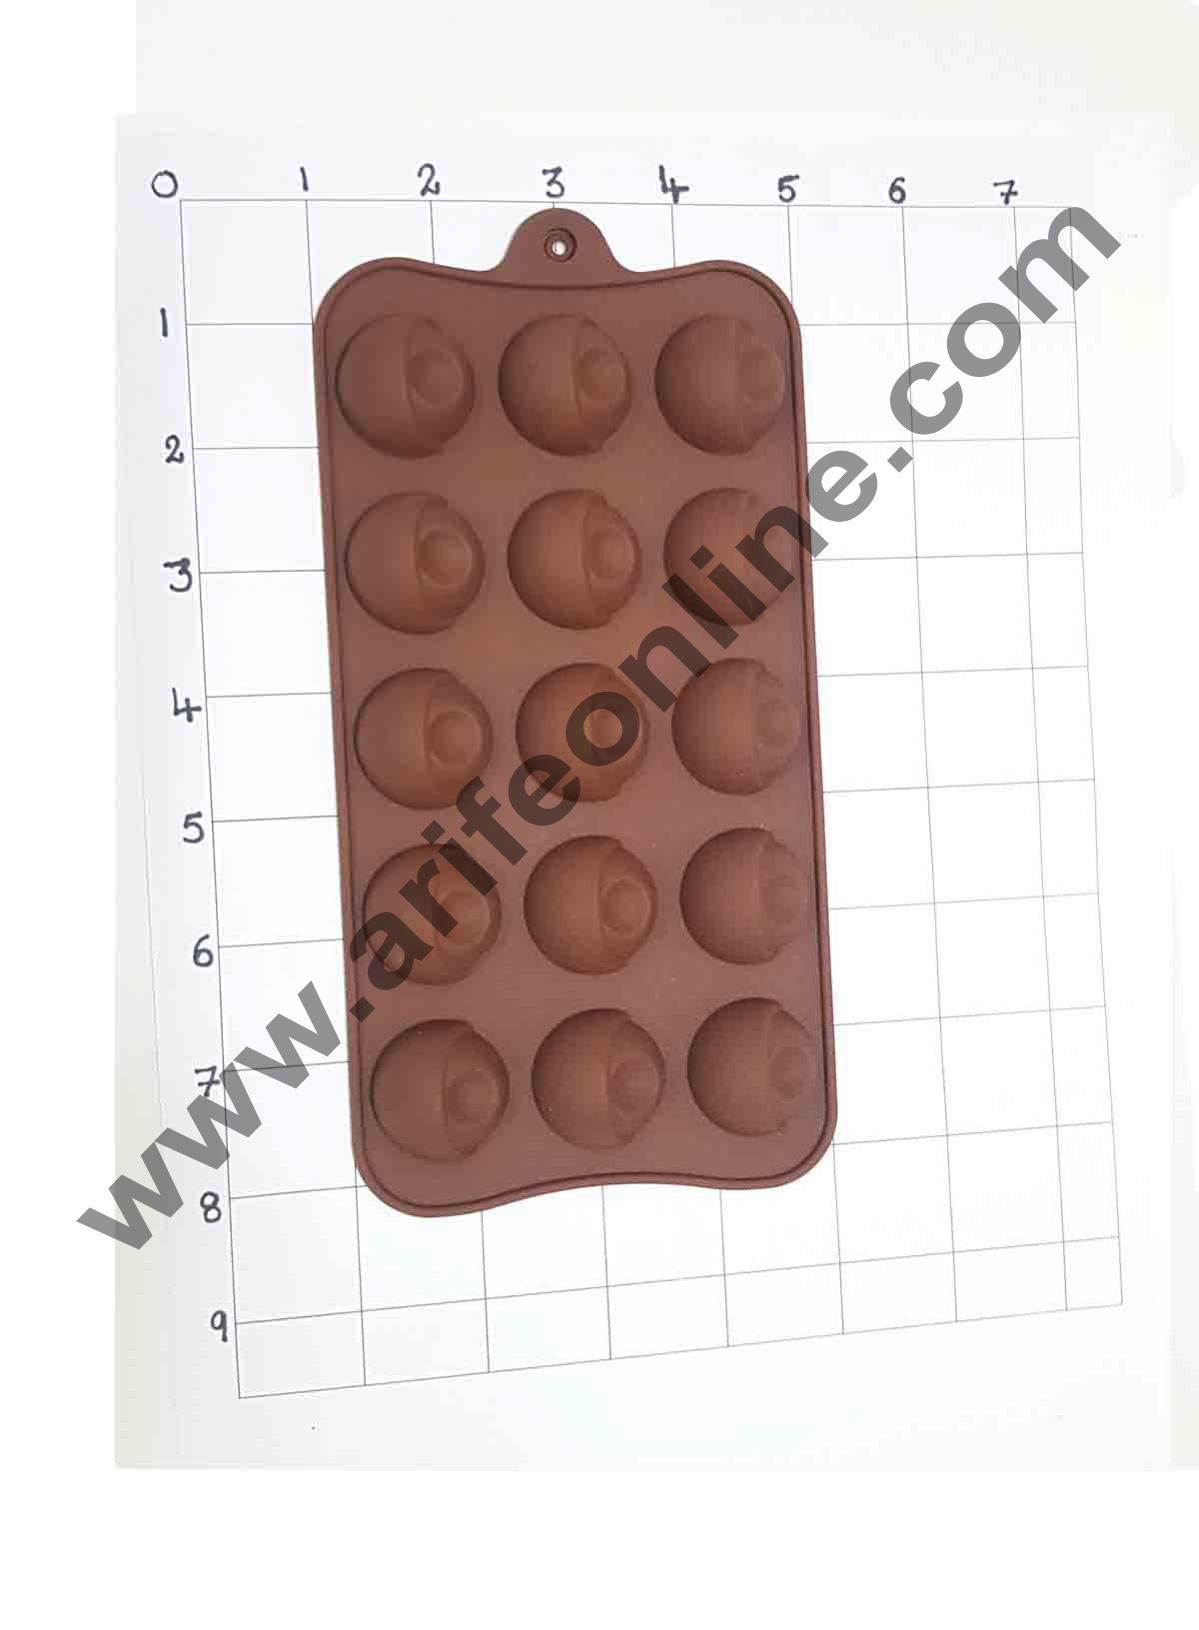 Cake Decor Silicon 15 Cavity Half Sphere with Round Shapes Design Brown Chocolate Mould, Ice Mould, Chocolate Decorating Mould